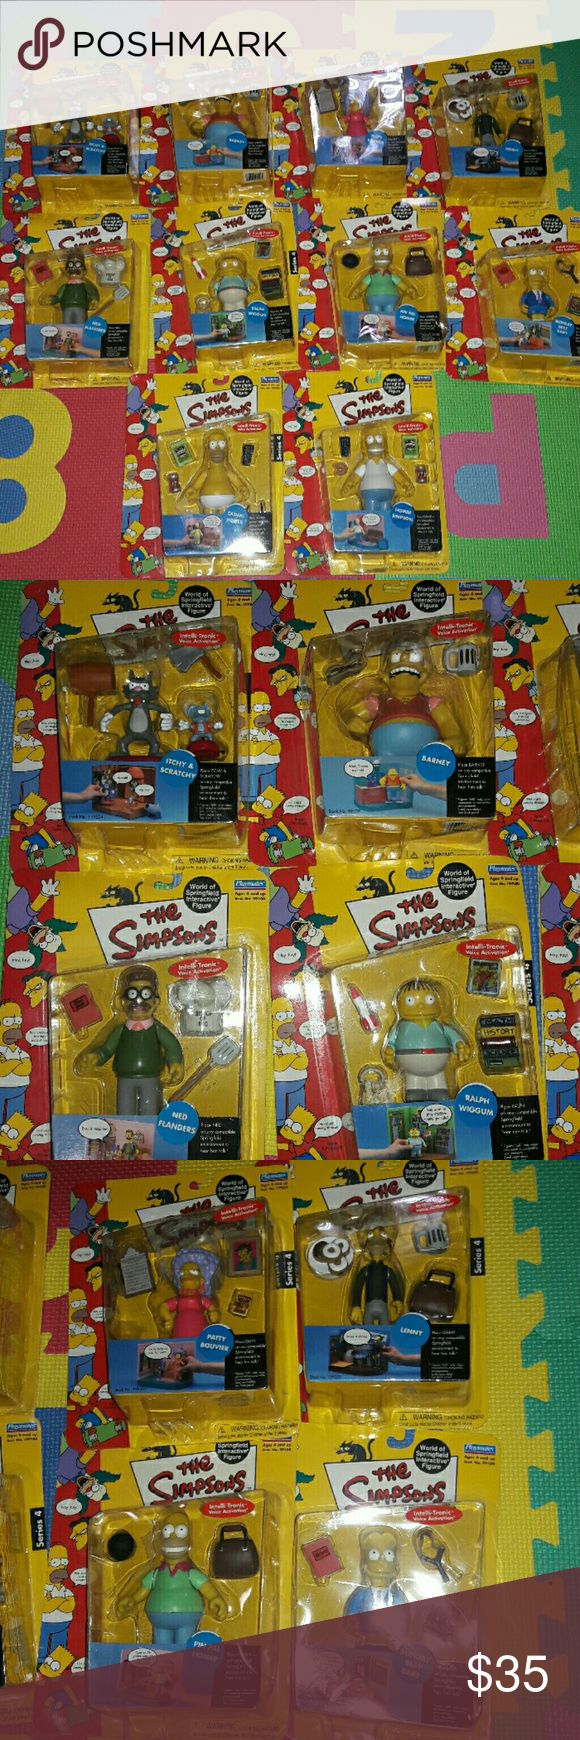 Playmates Simpson's World Springfield Interactive. New and sealed box.? Bundle of 10 figurines.? The simpsons playmates Intelli- Tronic? Voice activation.? Itchy and scratchy? Barney? Patty Bouvier? Lenny? Ned Flanders? Ralph Wiggum? Homer Simpson? Pin pal Homer? Sunday best Bart? Casual Homer Other